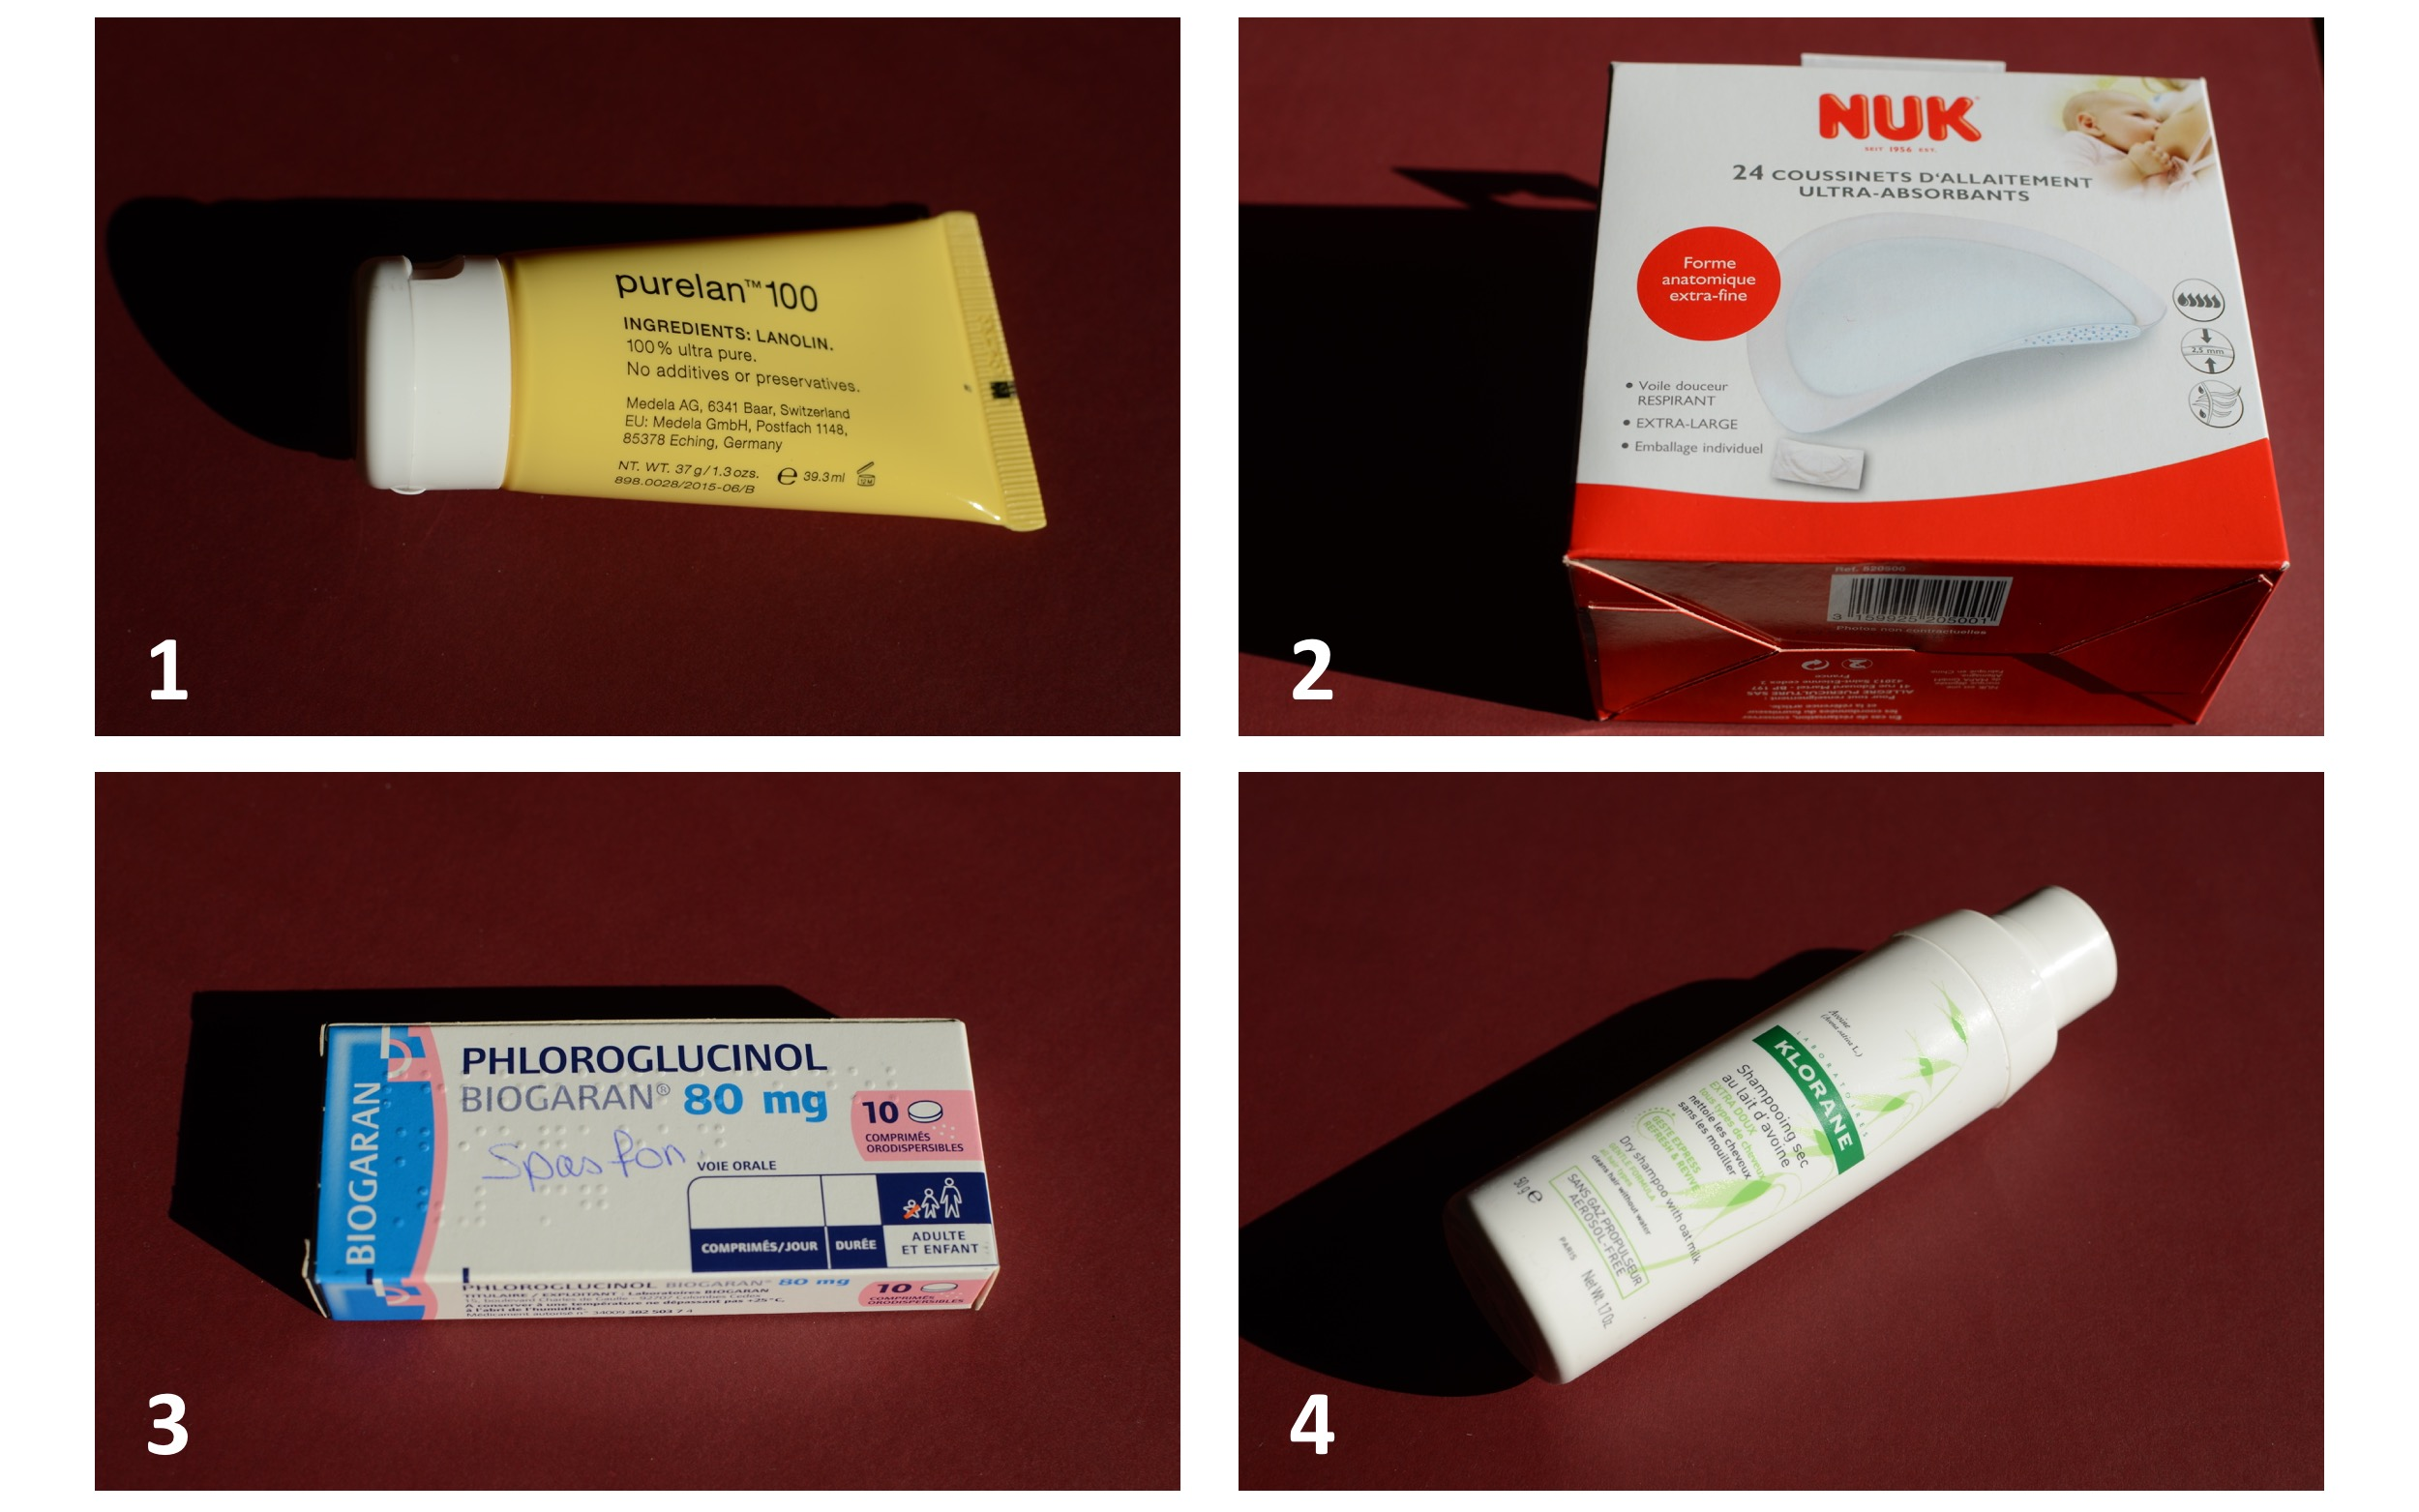 Additional stuffs for the stay in the hospital